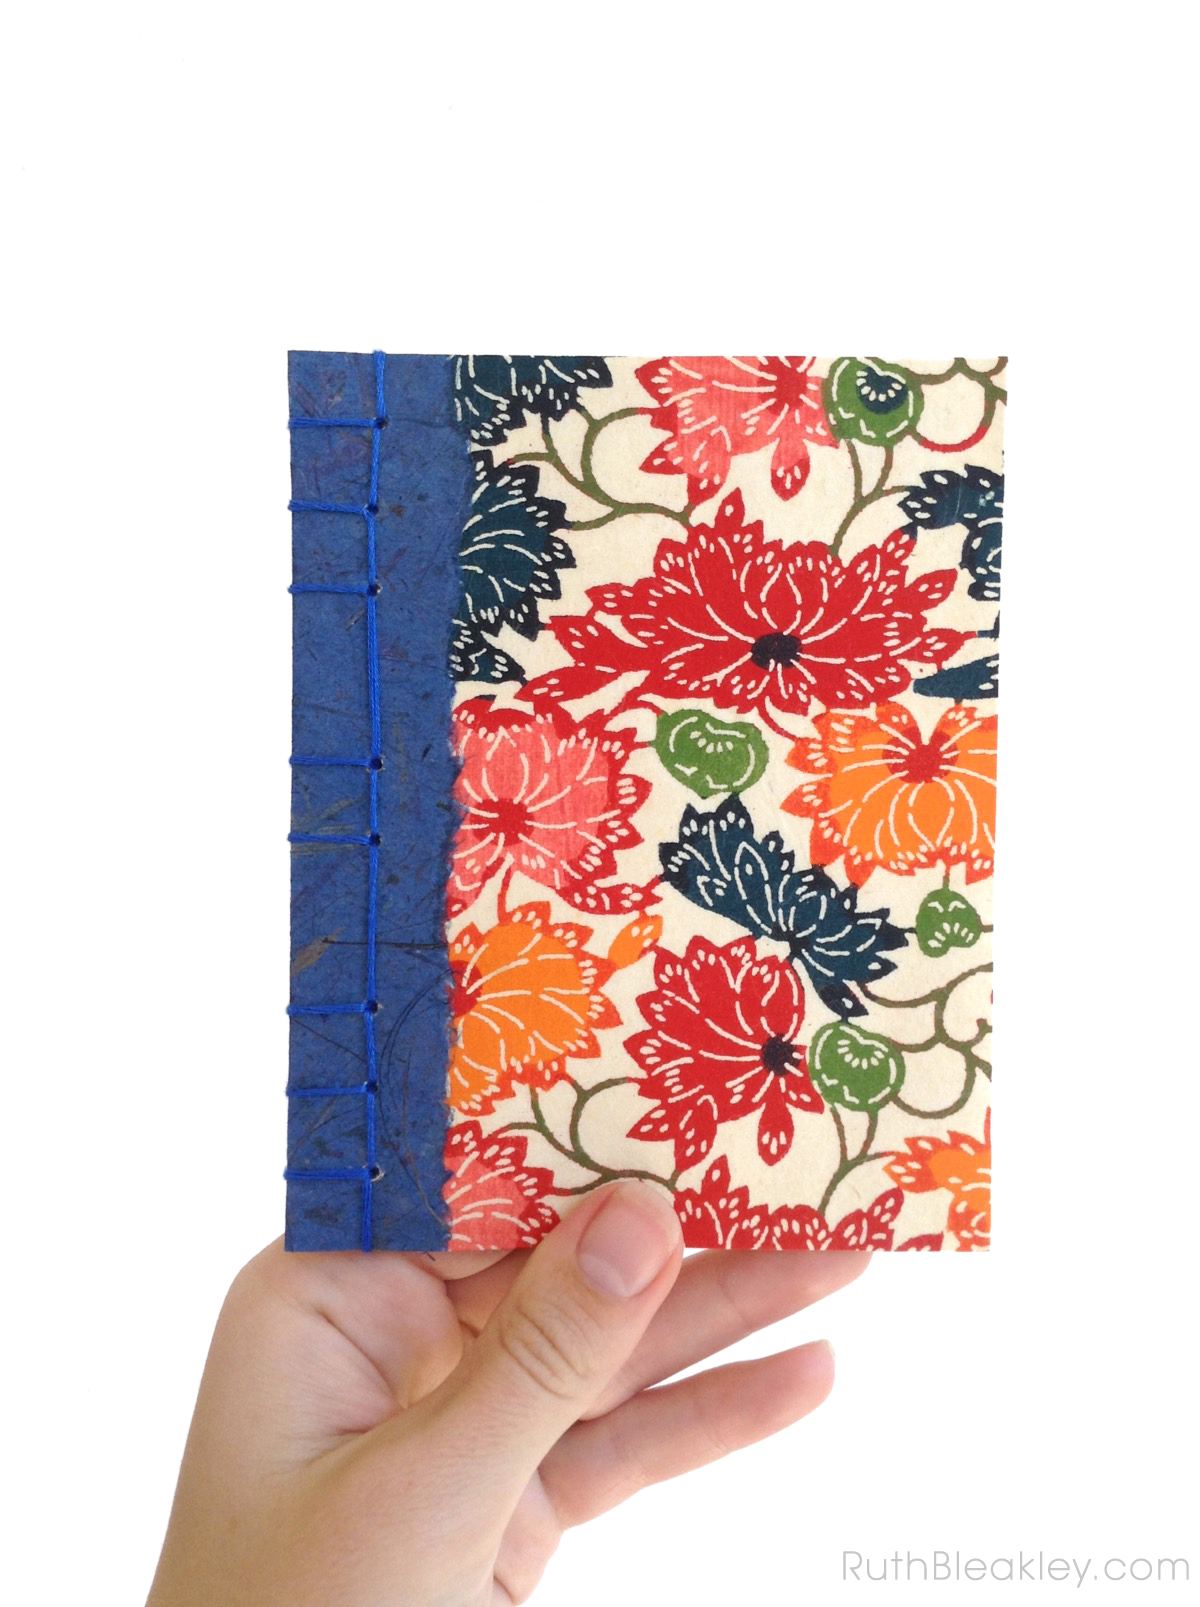 Katazome Shi handmade notebook by Ruth Bleakley - Japanese Stab Binding